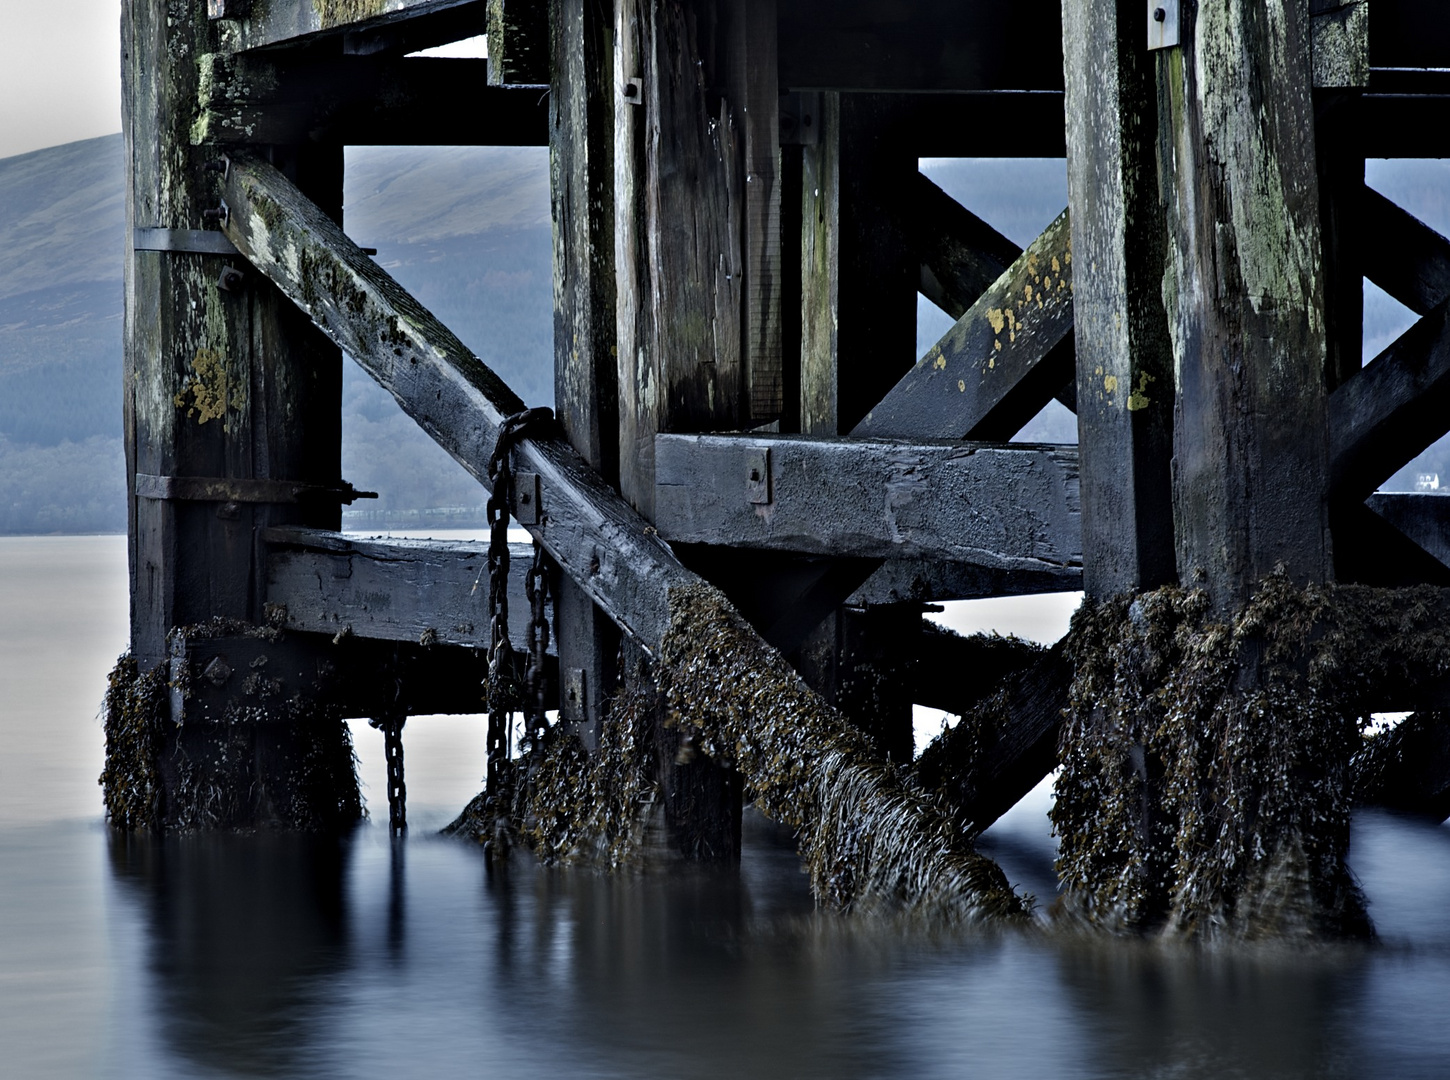 Pier at Inveraray, Argyll